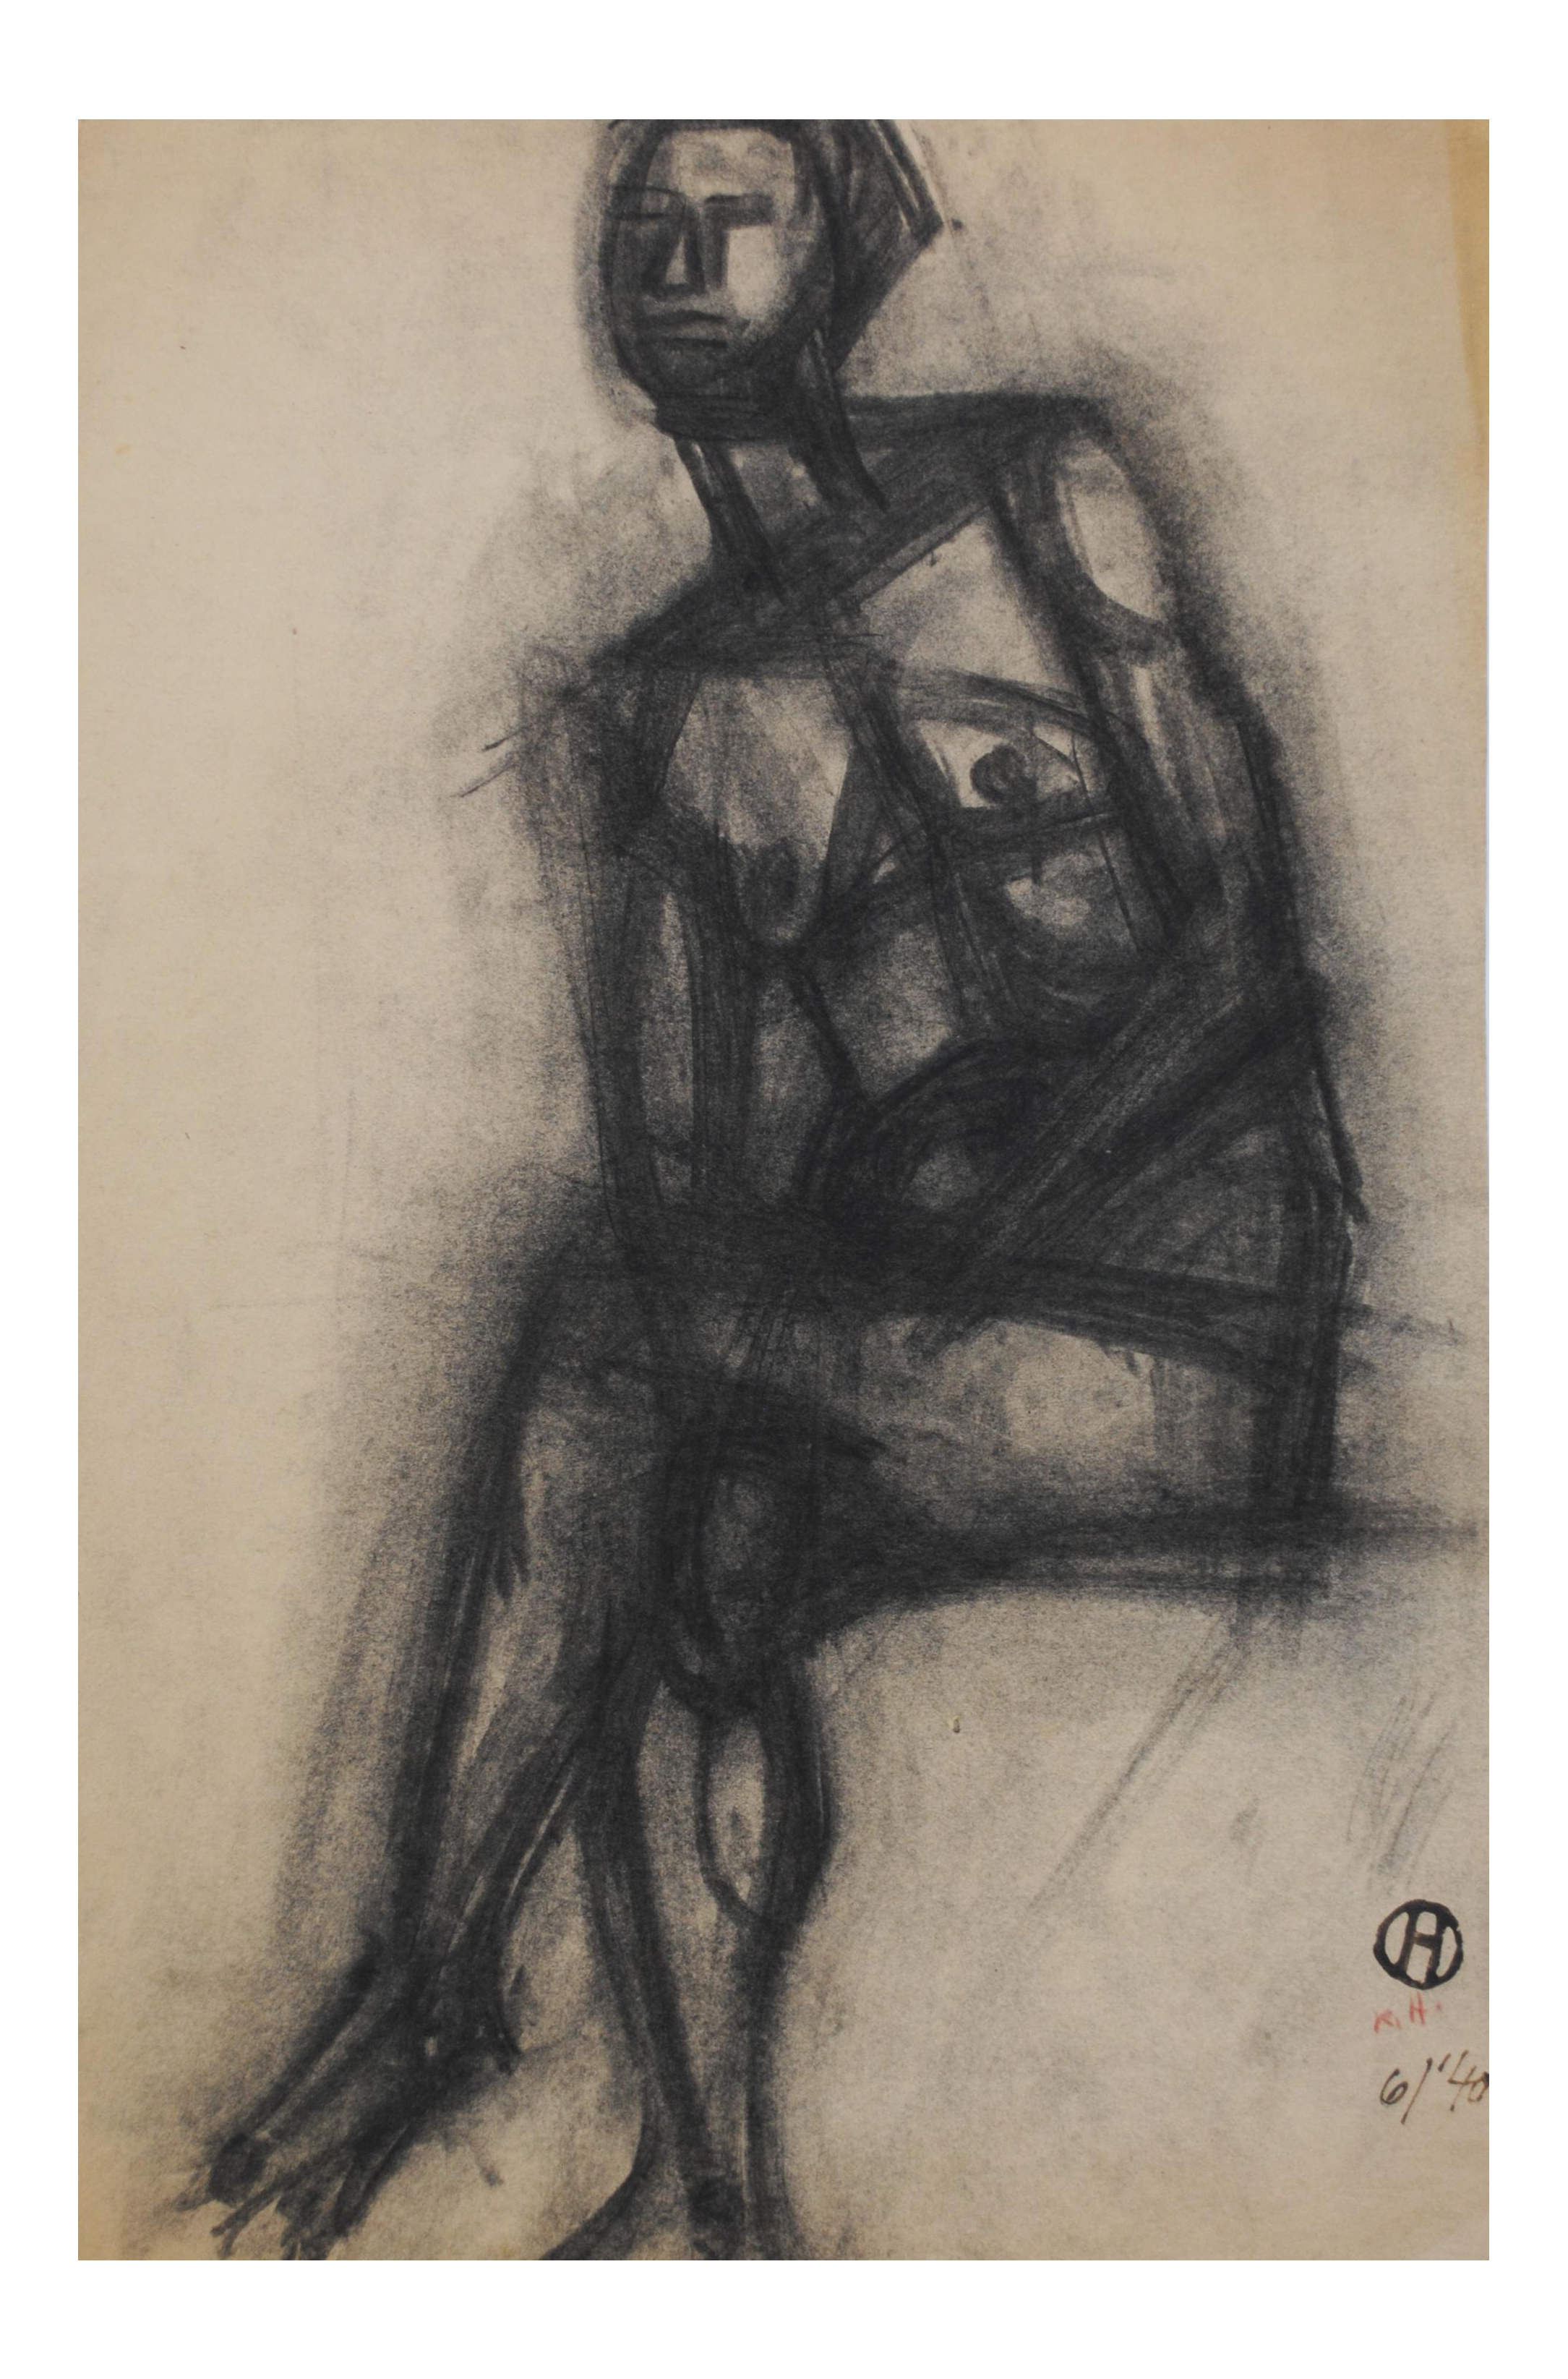 Studying drawing charcoal. By richard hackett